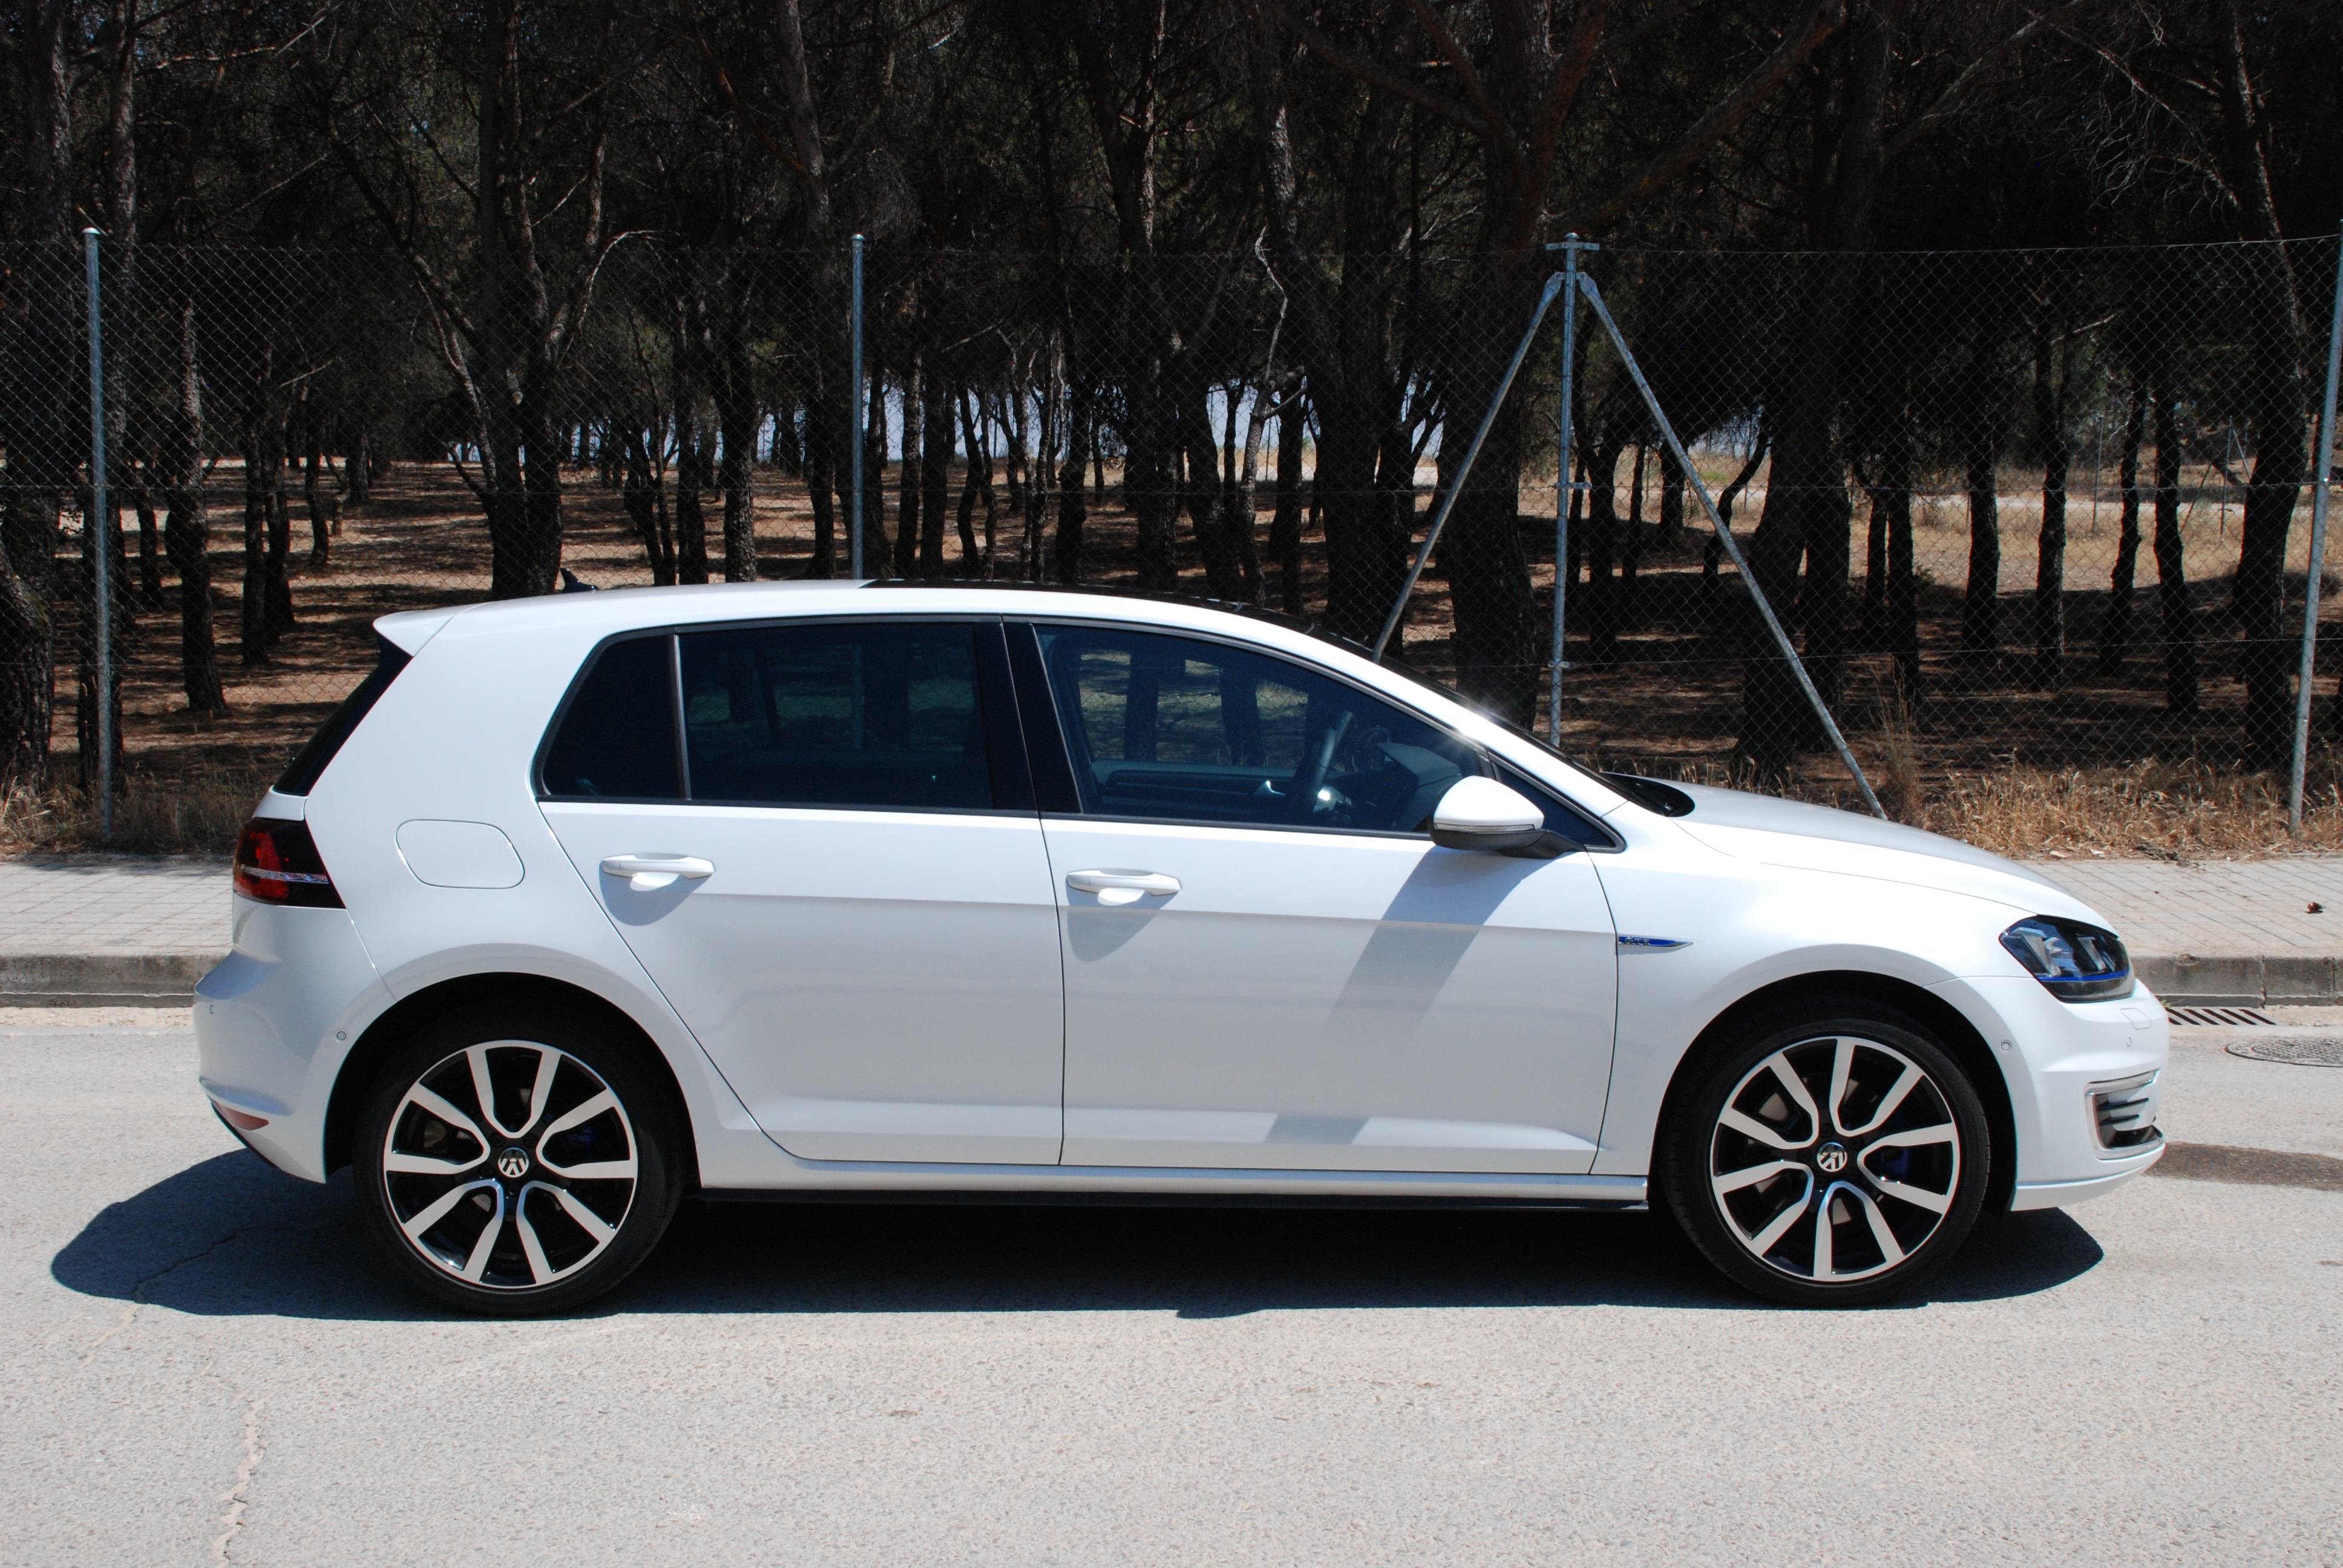 Golf Gte Test >> Last Week Had The Vw Golf Gte For A 5 Day Test Drive Need